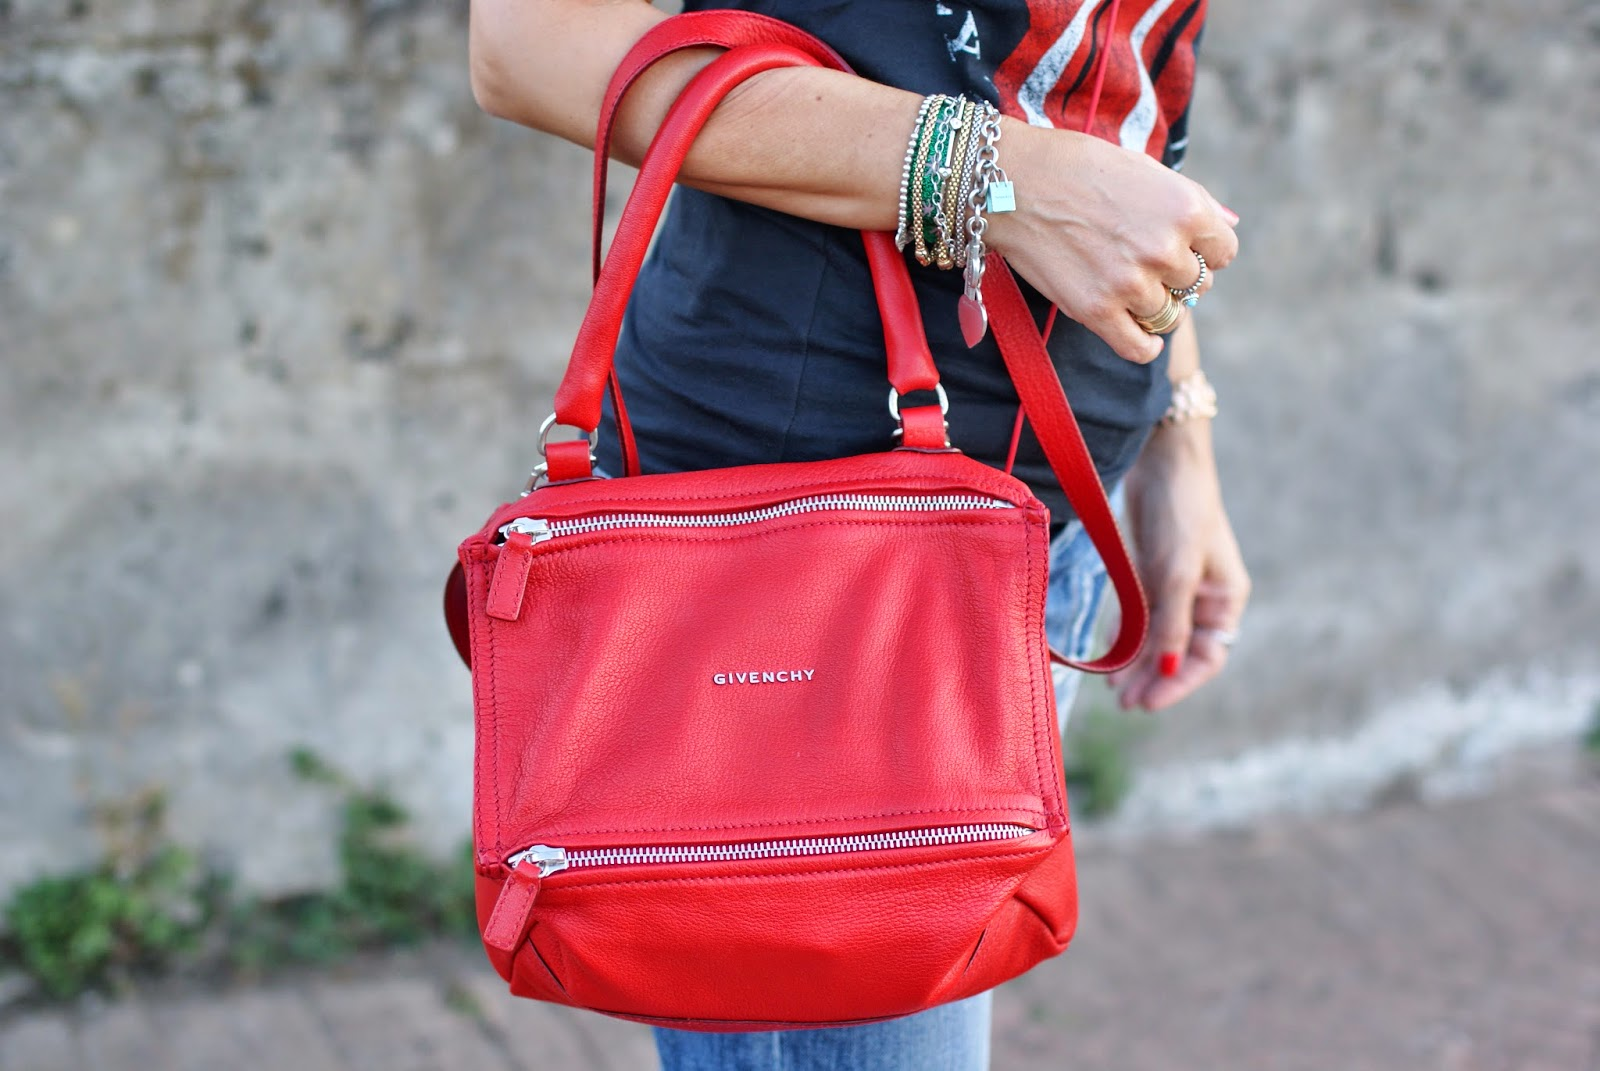 Givenchy red Pandora bag in small size, Fashion and Cookies, fashion blogger